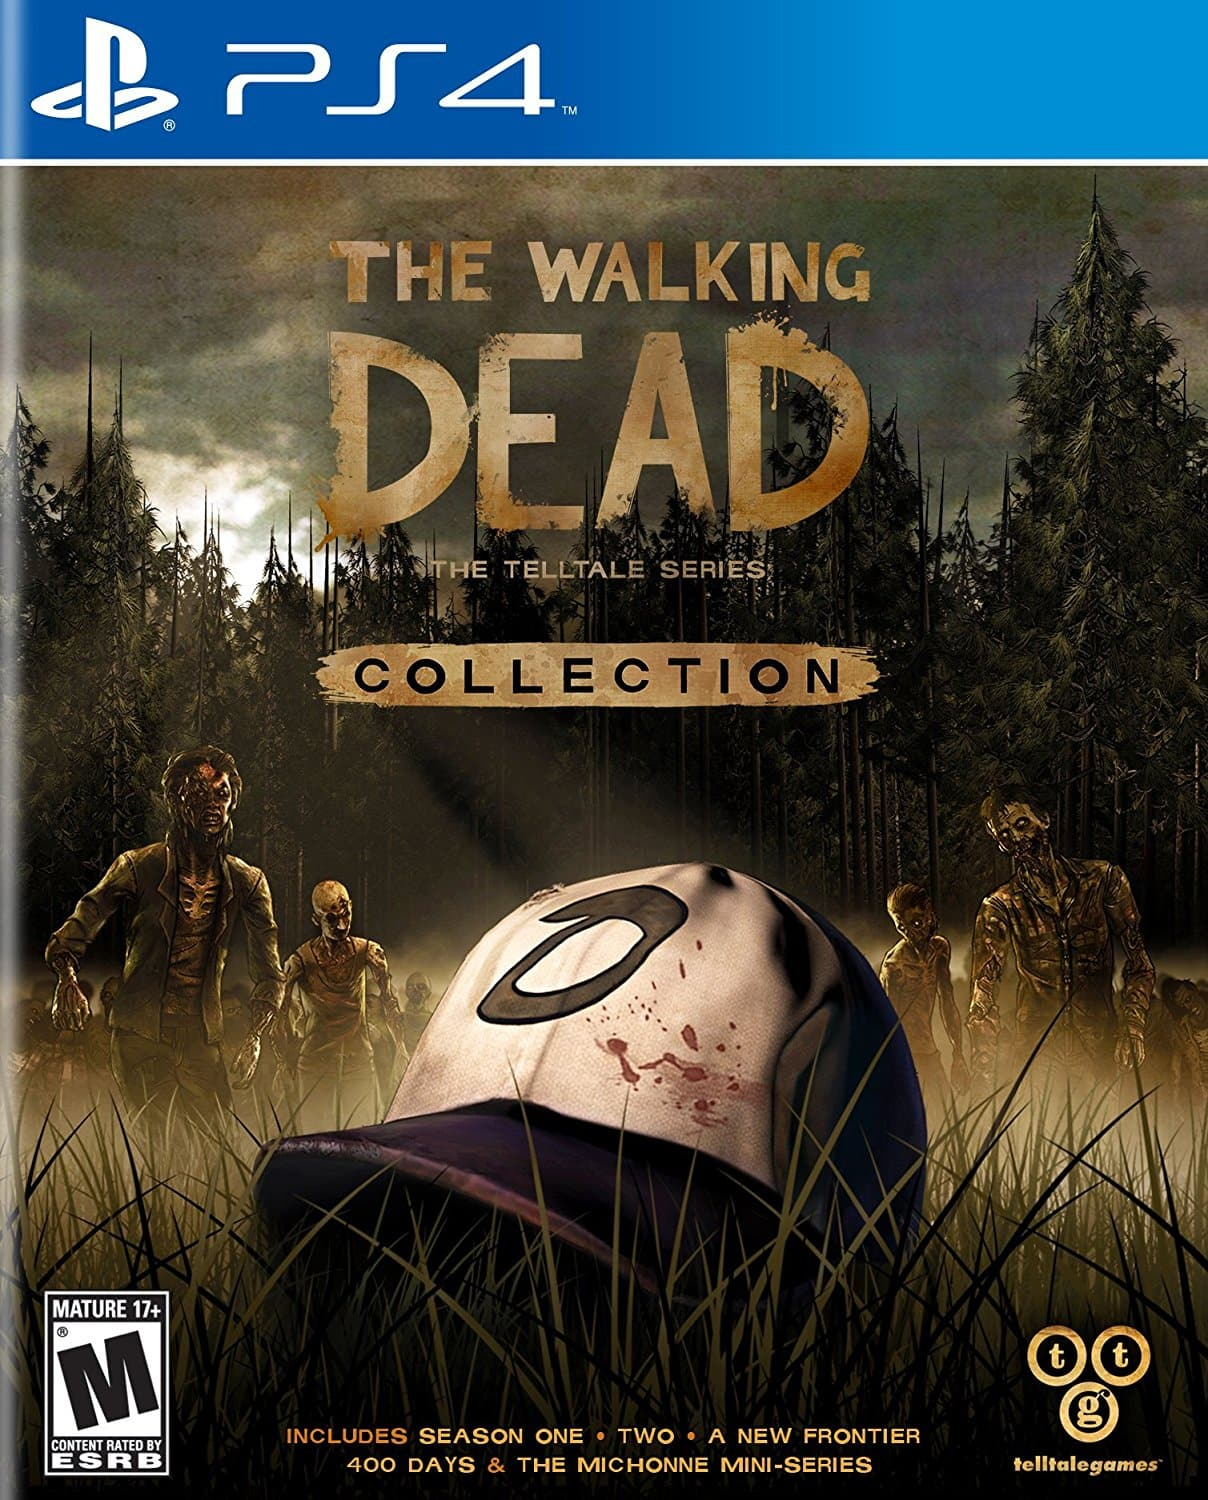 The Walking Dead: The Telltale Series Collection (PS4 or Xbox One) $39.99 + Free Shipping via Amazon